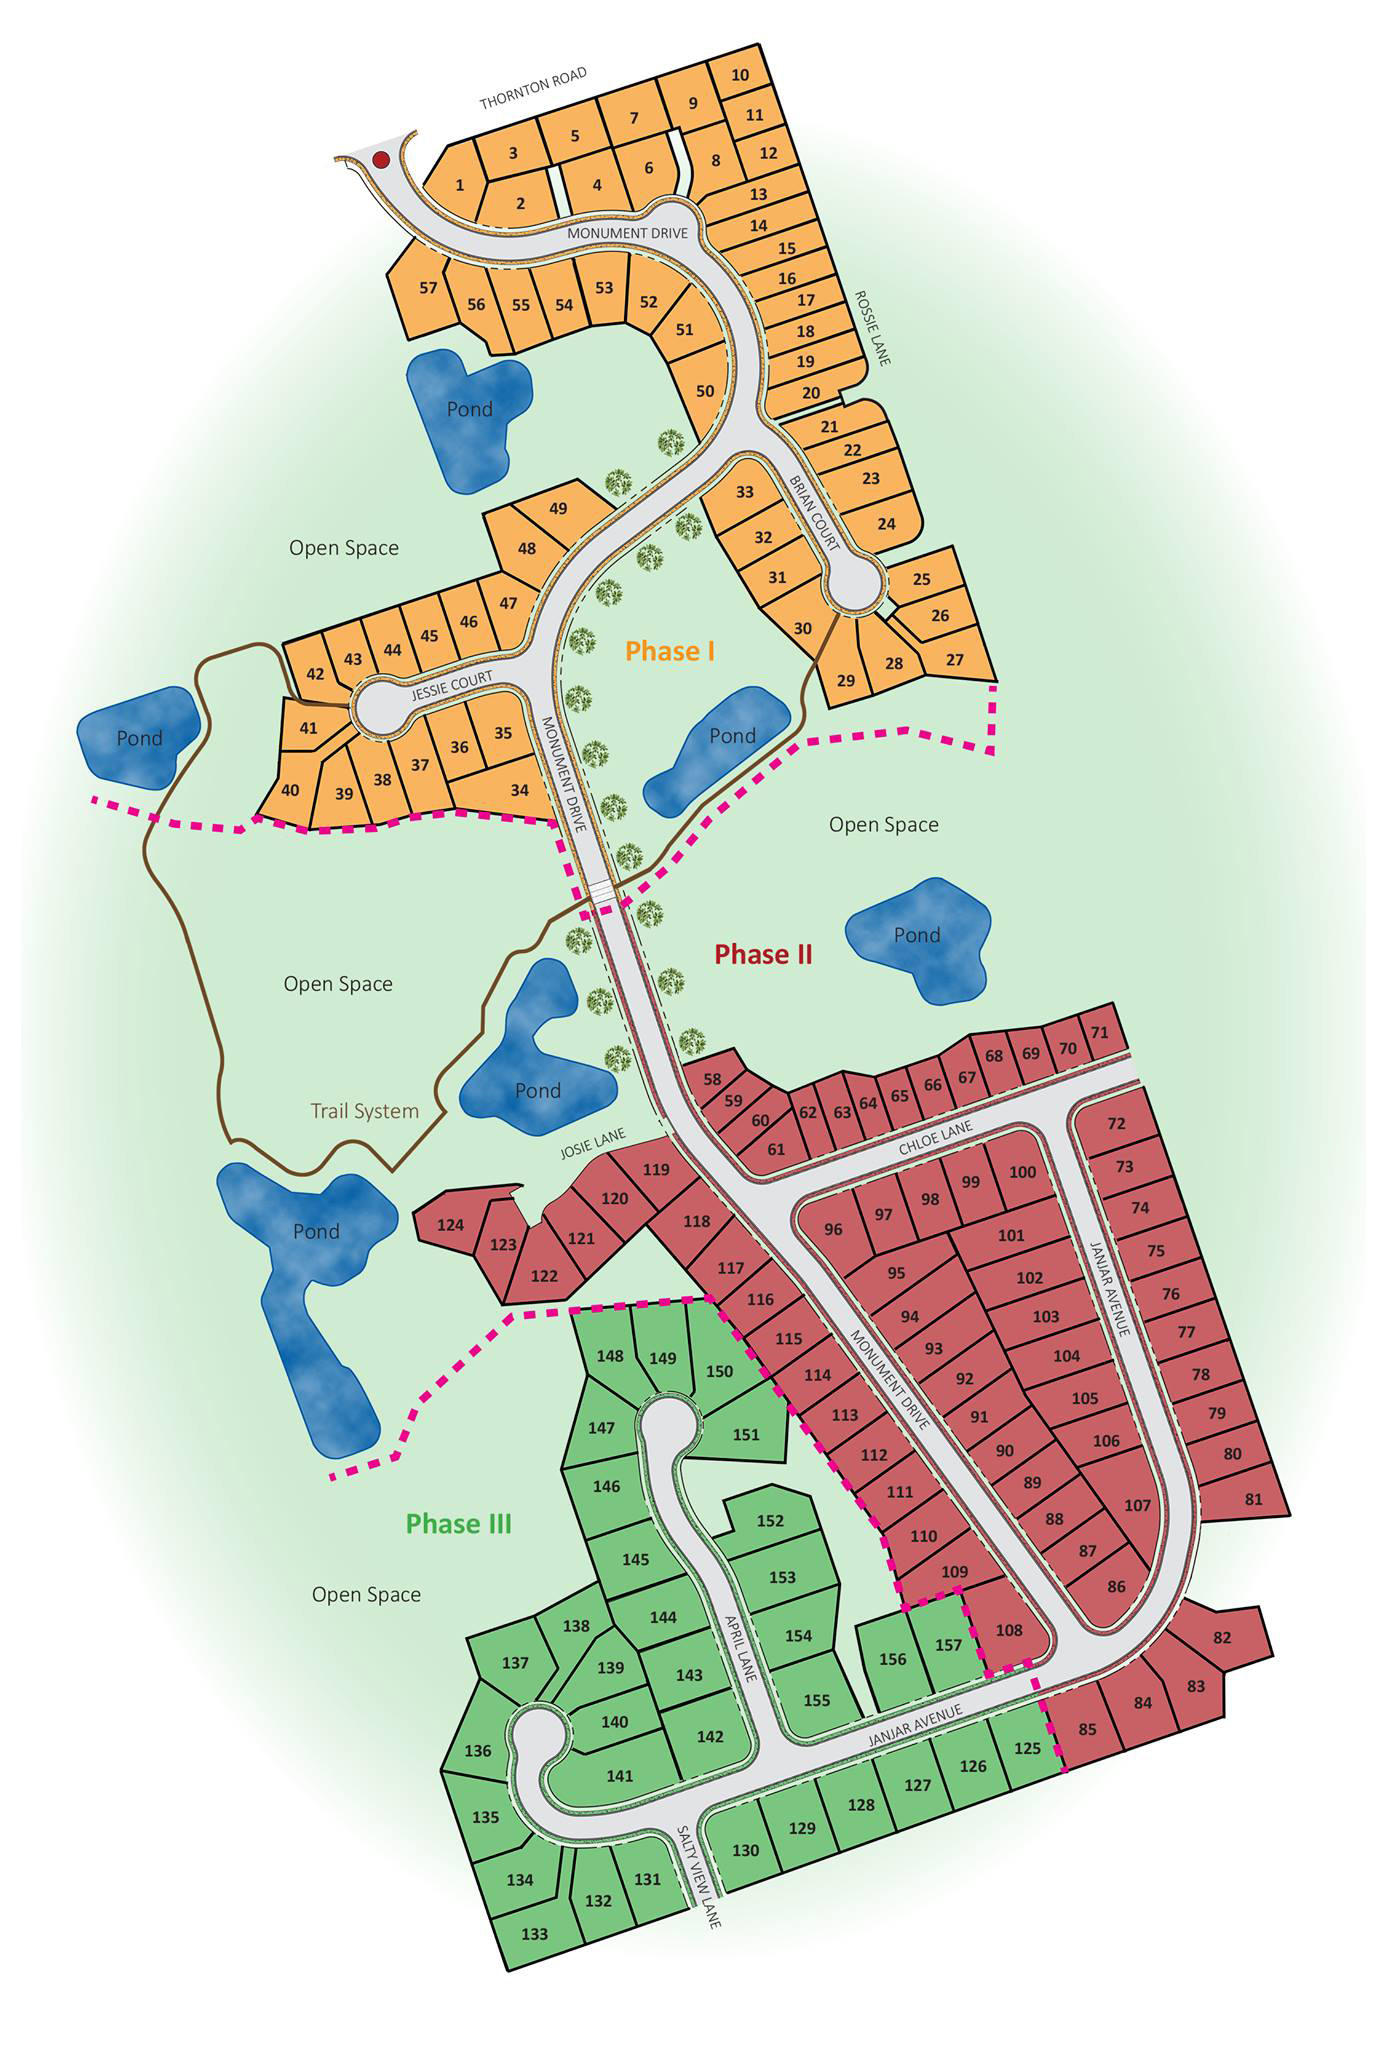 Meadows-Ferndale Homeowners Association Siteplan